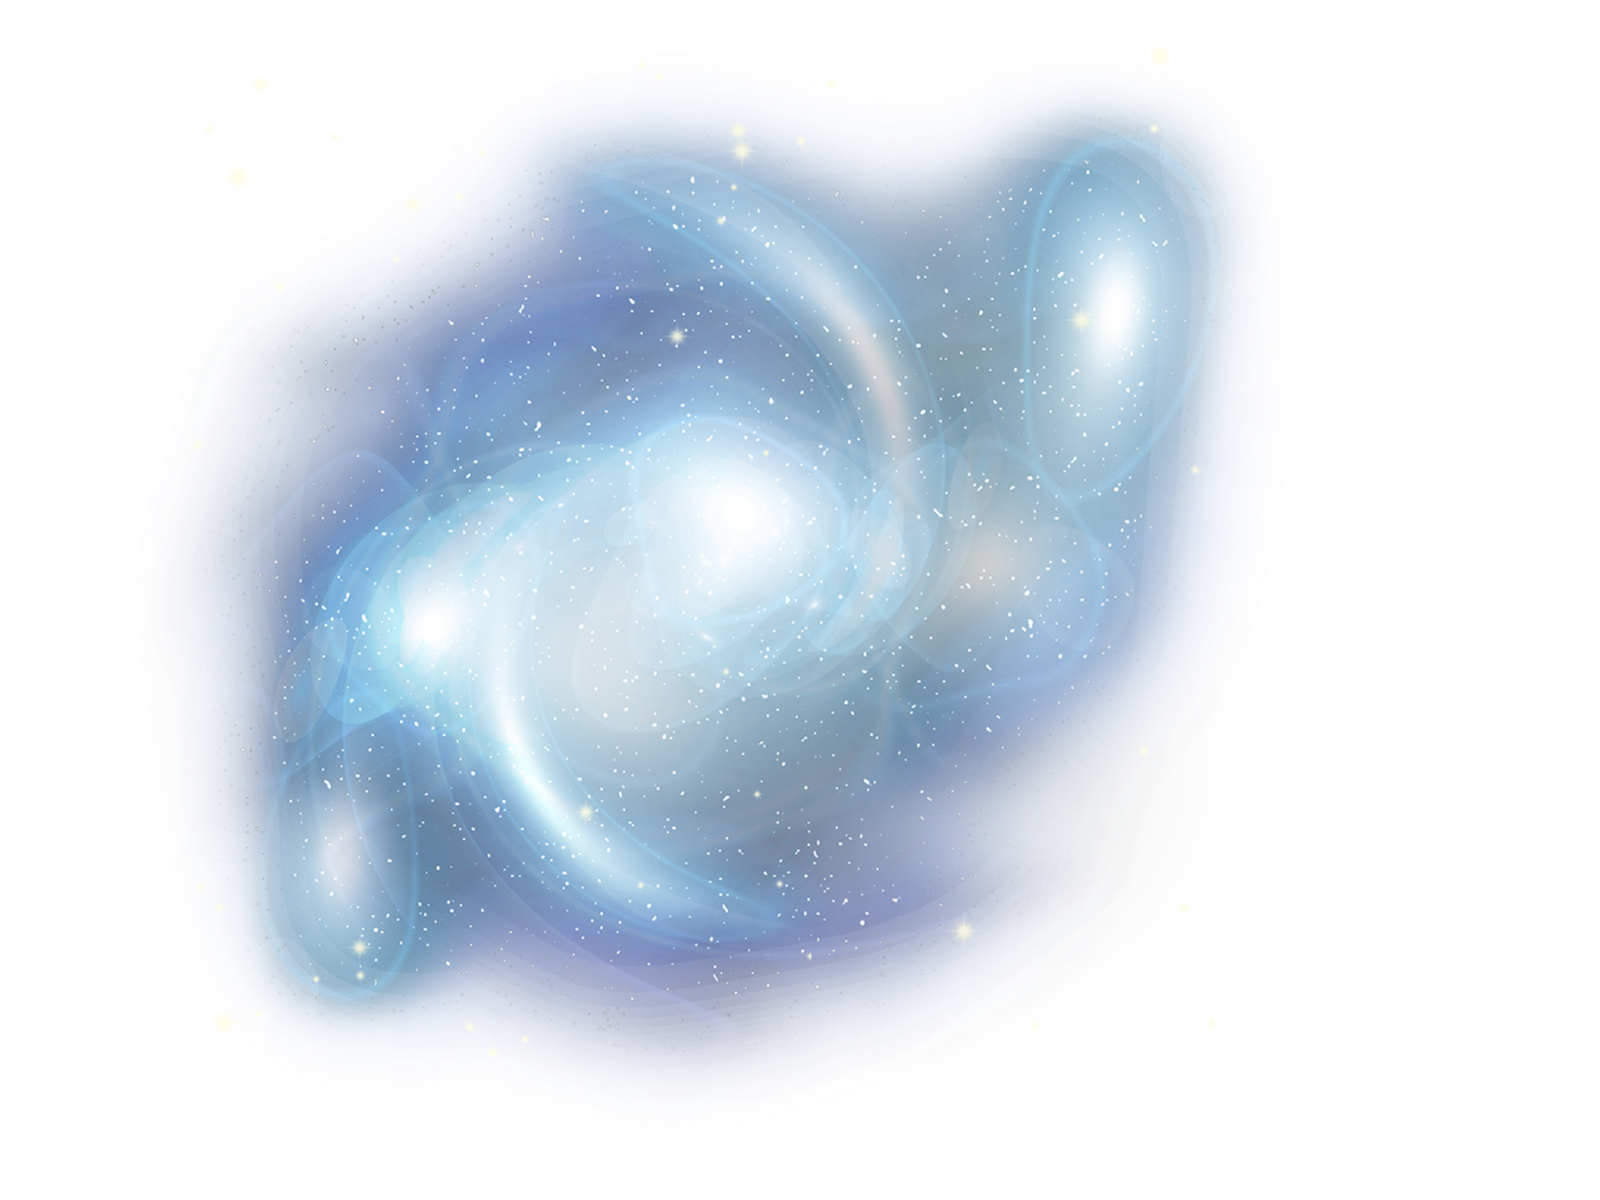 Freetoedit png stars with. Galaxy clipart monochrome